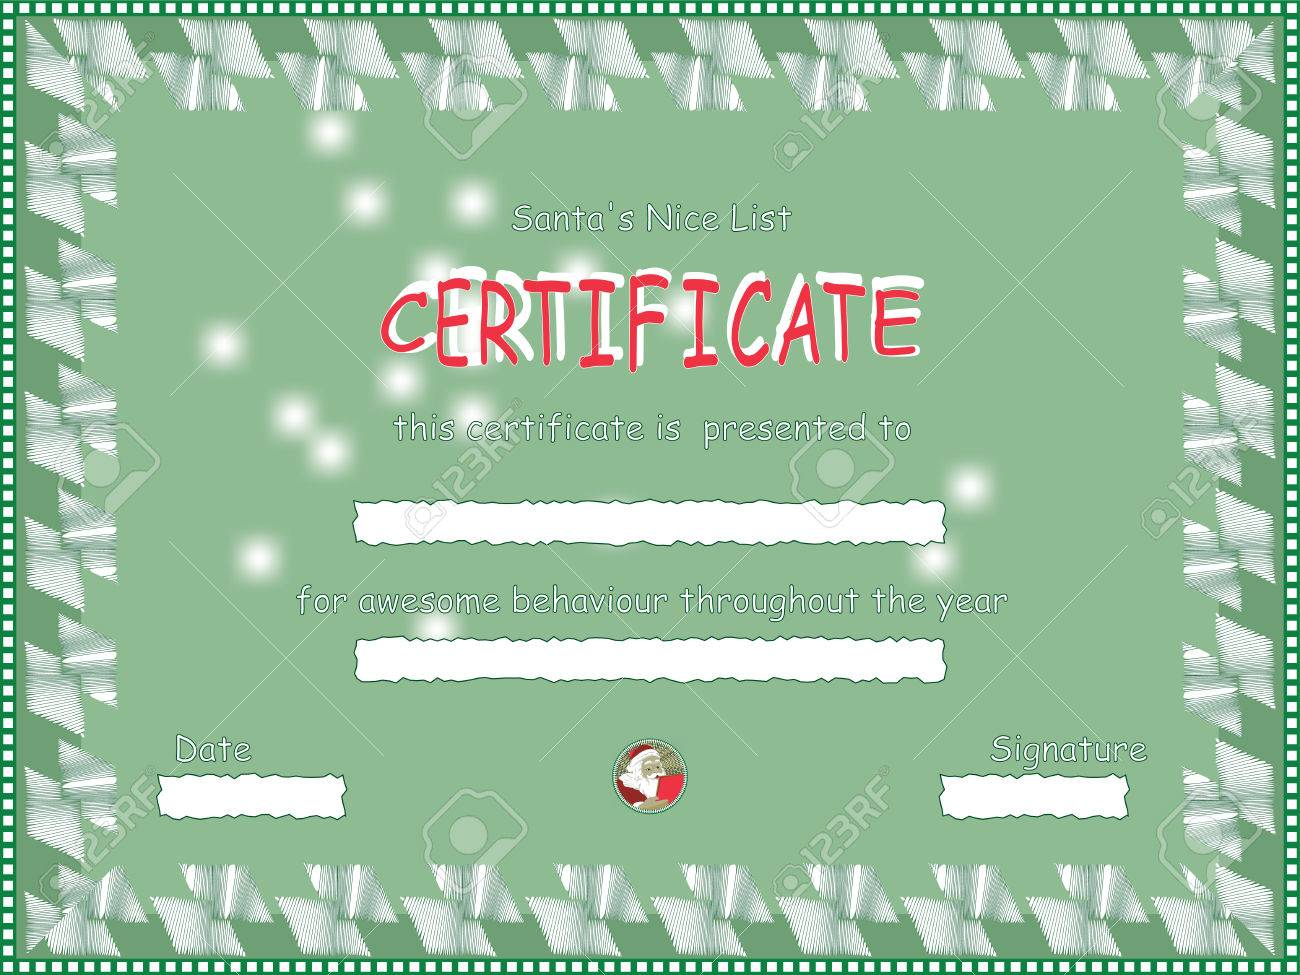 Nice List Certificate From Santa Royalty Free Cliparts Vectors And Stock Illustration Image 23297974